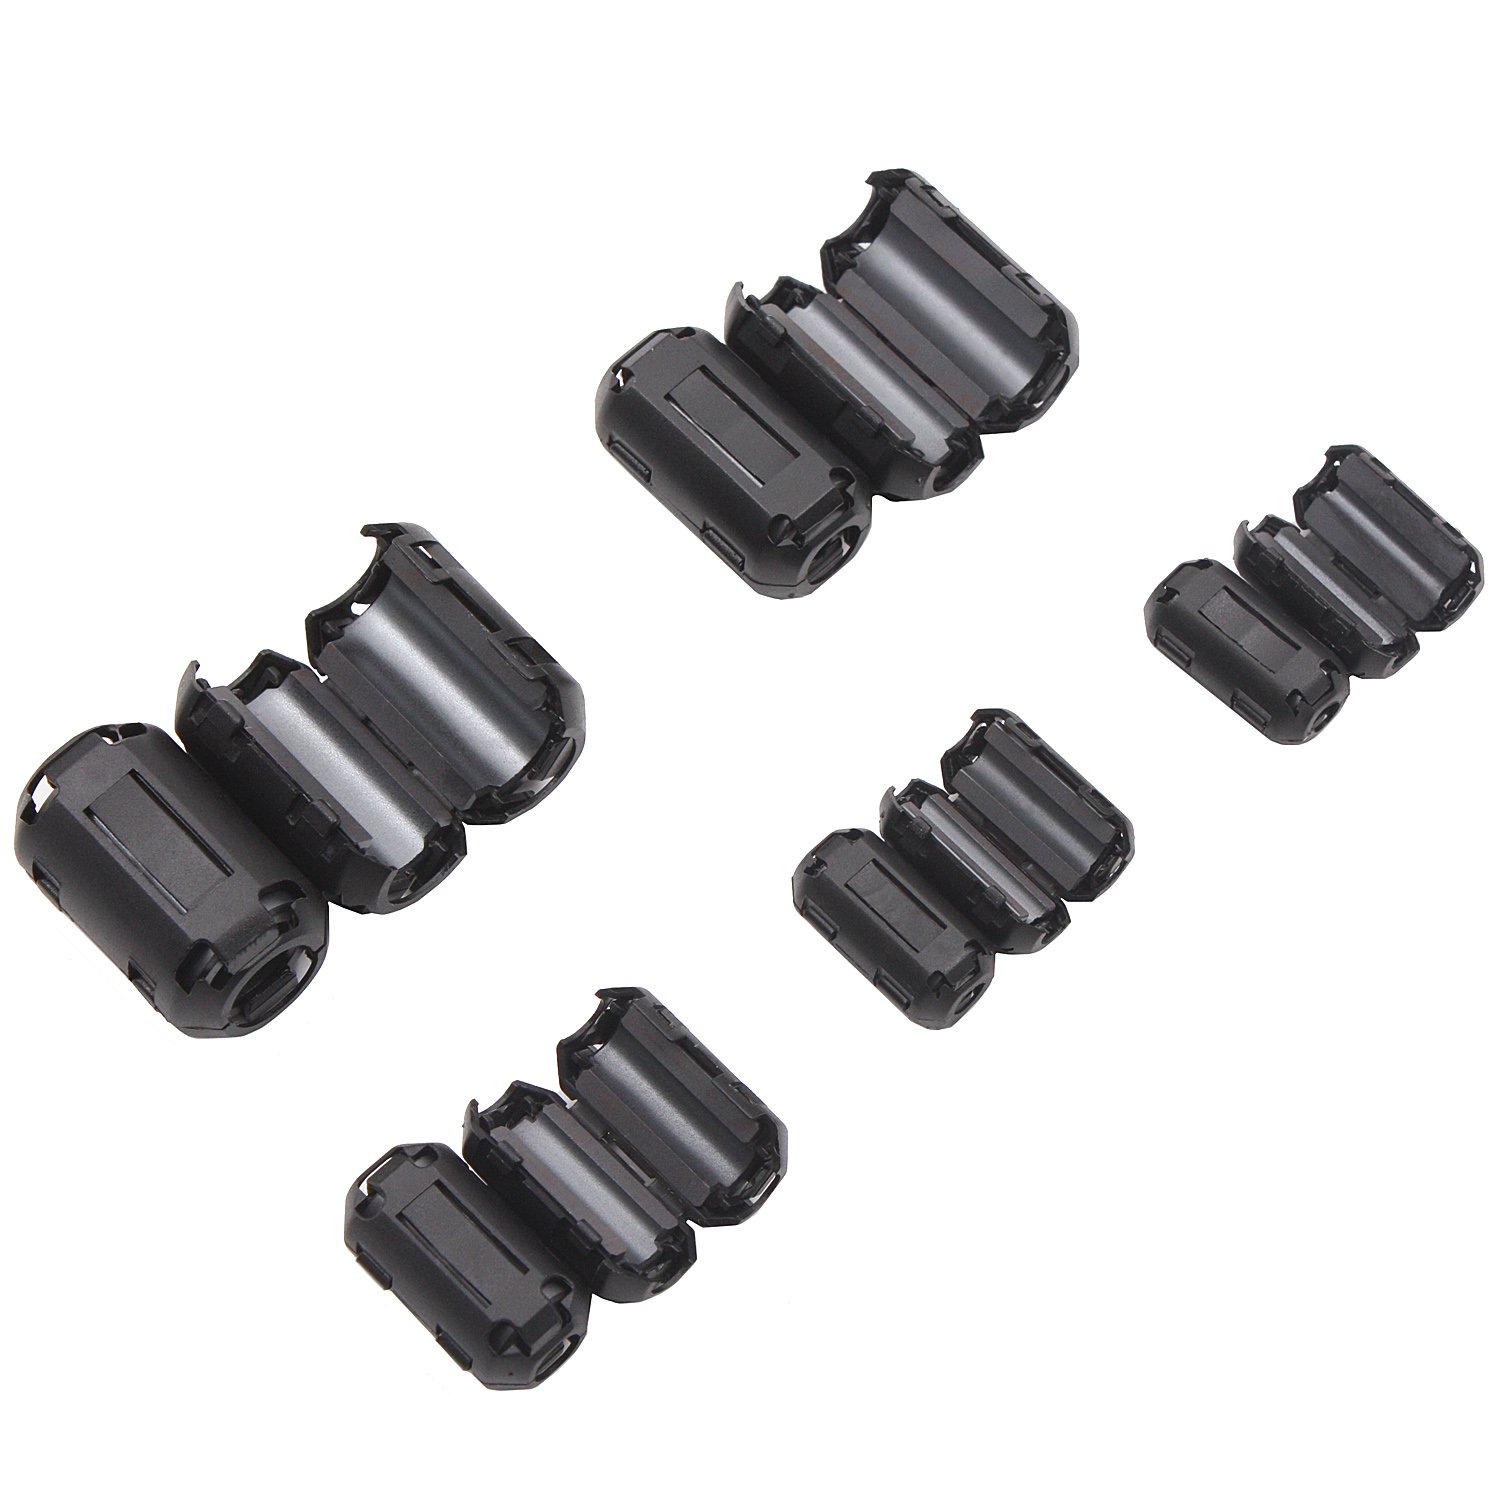 RFI EMI Noise Suppressor Cable Clip for 3mm// 5mm// 7mm// 9mm// 13mm Diameter Led Light Radio Static 20 Pieces Clip-on Ferrite Ring Cores Black Noise Filter Clip BeltandRoad 623-0461167281